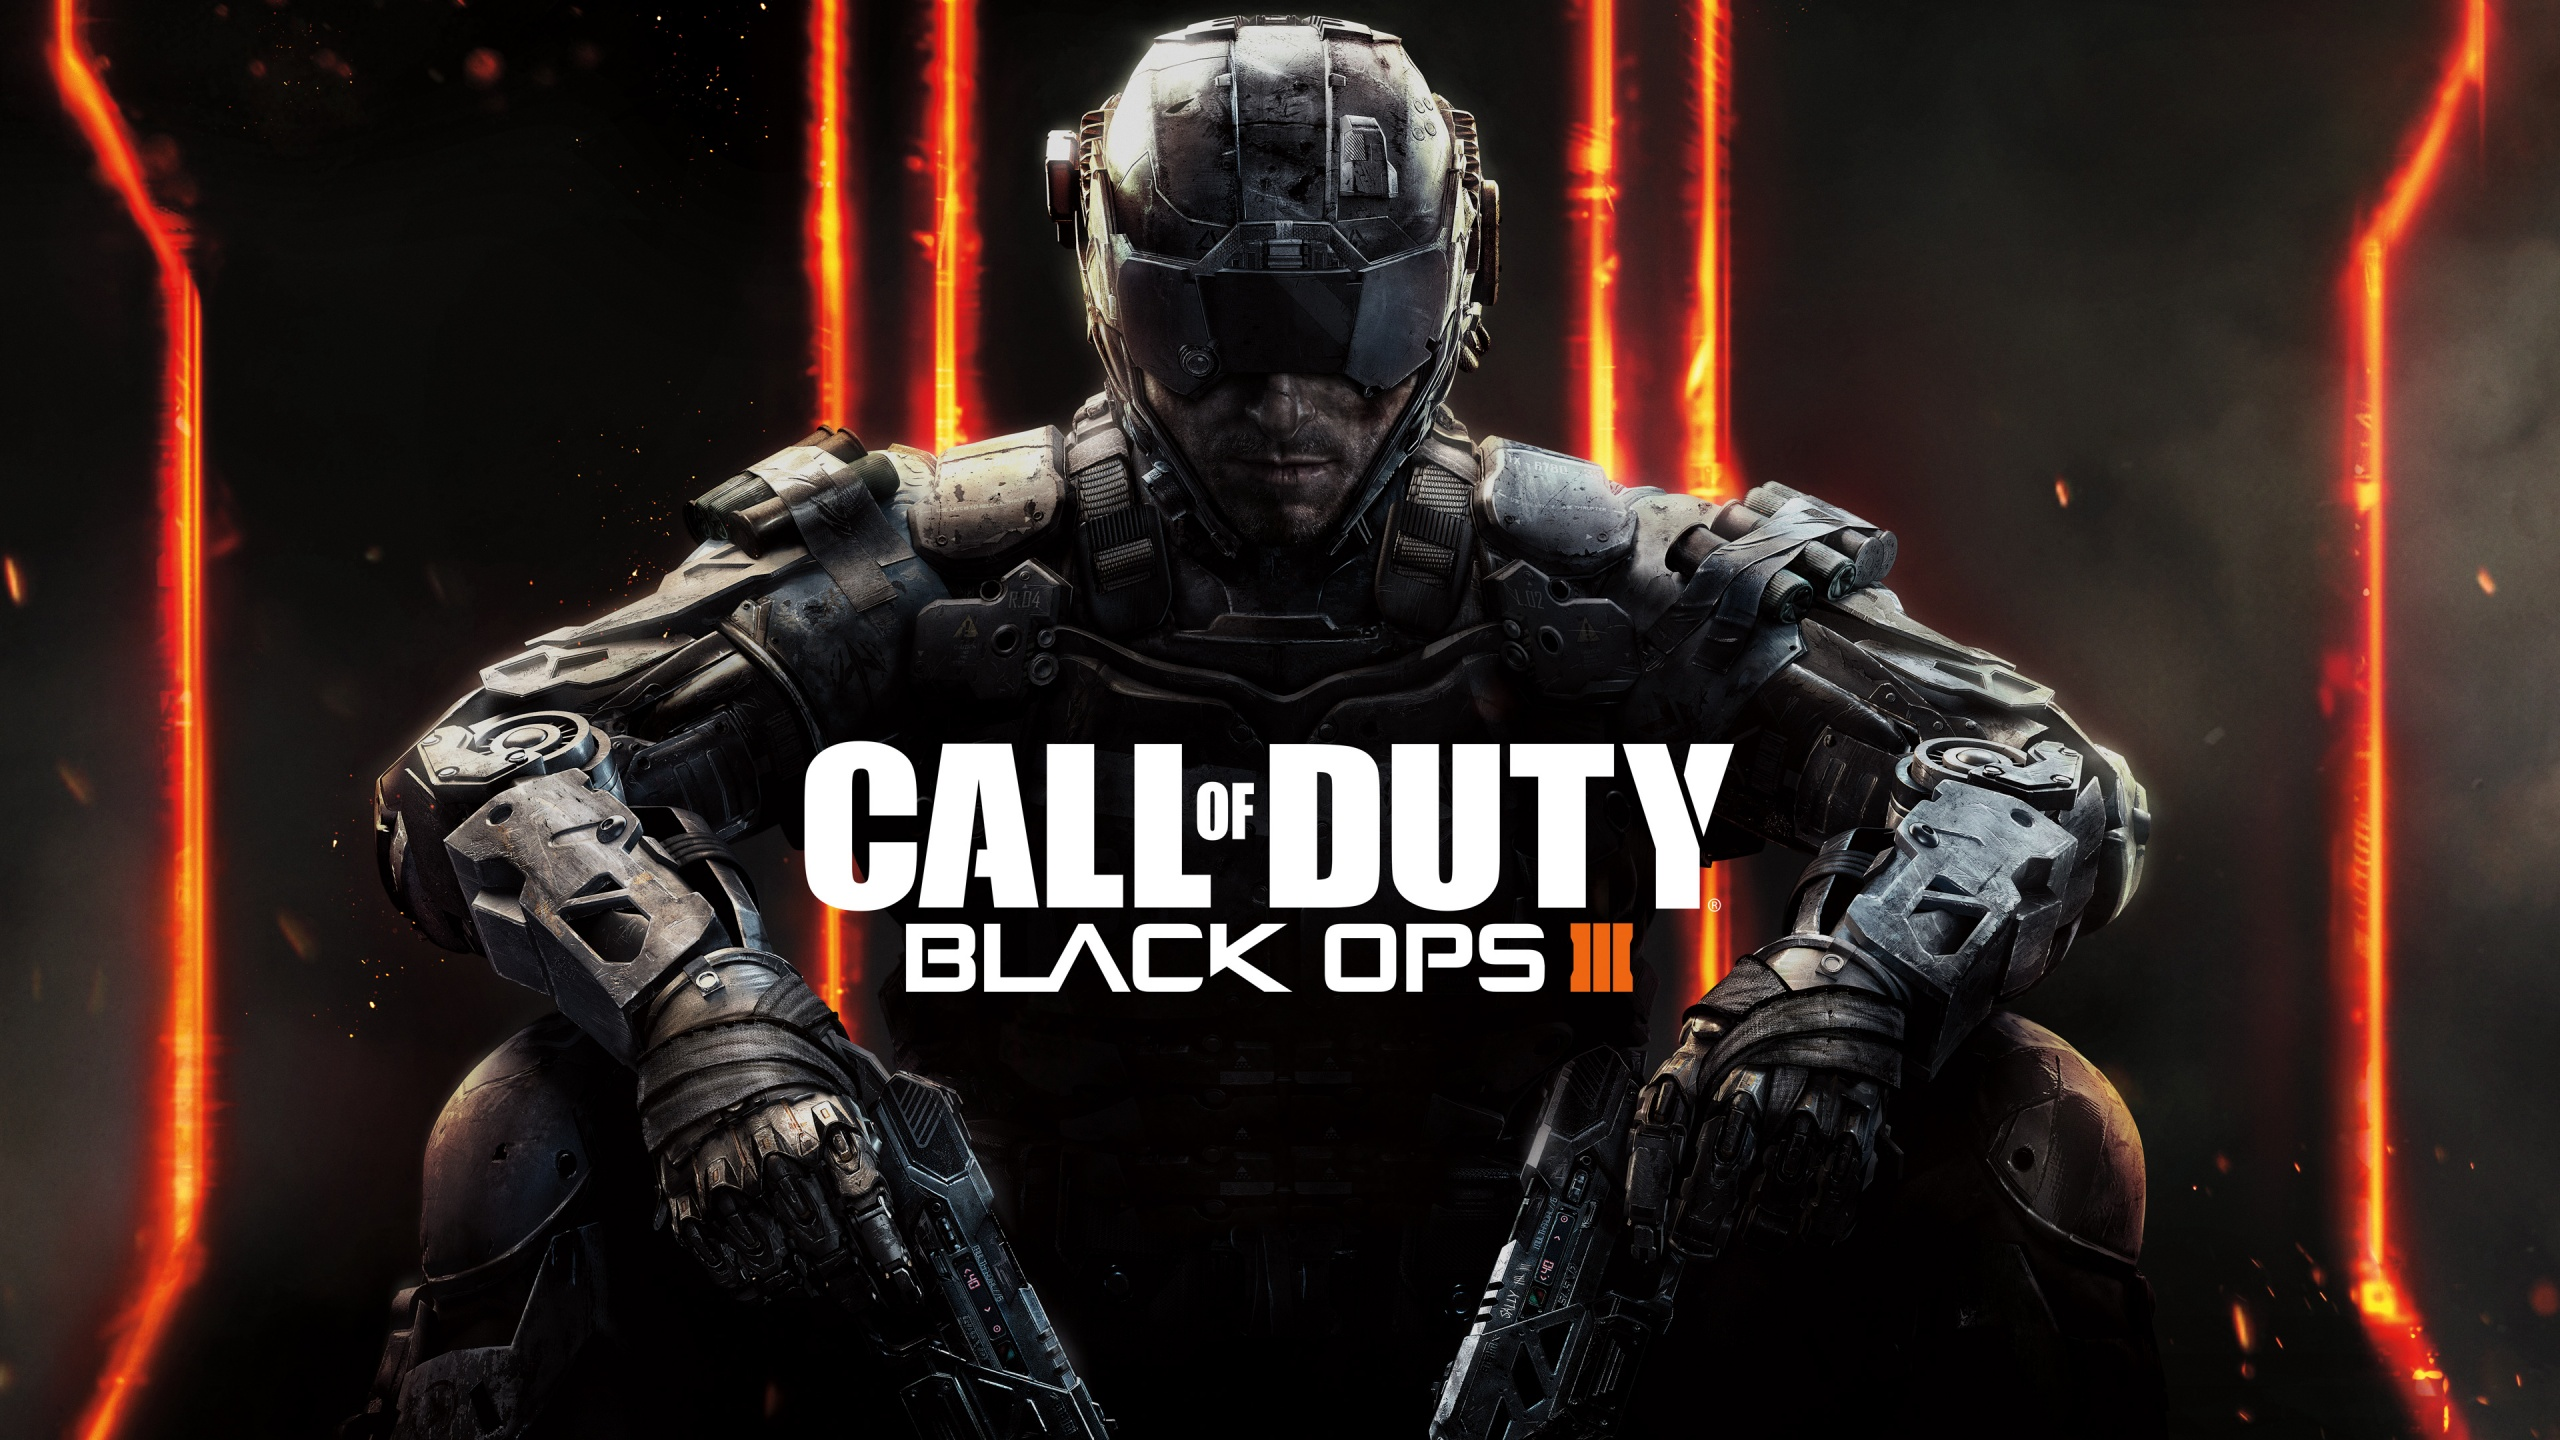 Call of Duty Black Ops III Wallpapers HD Wallpapers 2560x1440